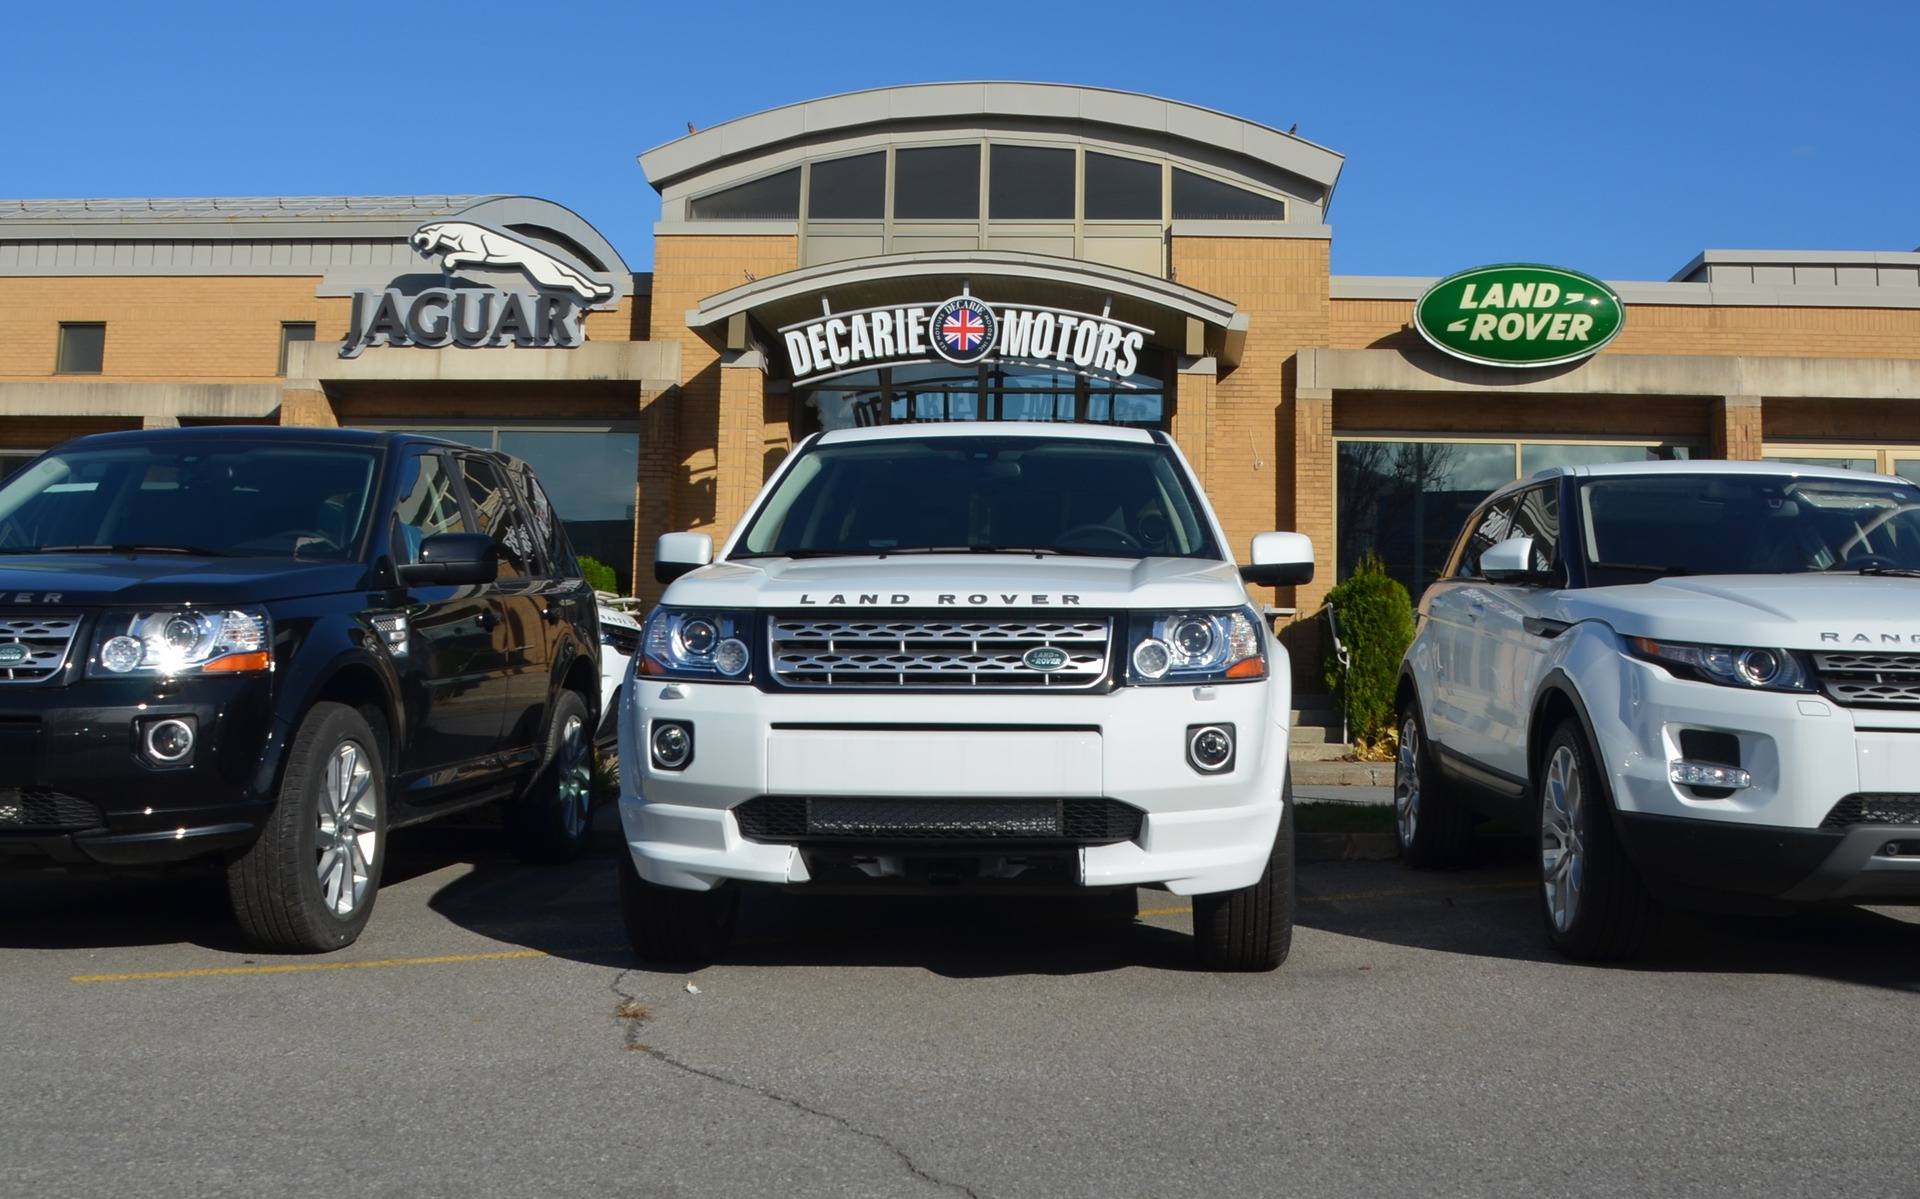 Decarie motors english cars and family values the car guide for Family motors used cars